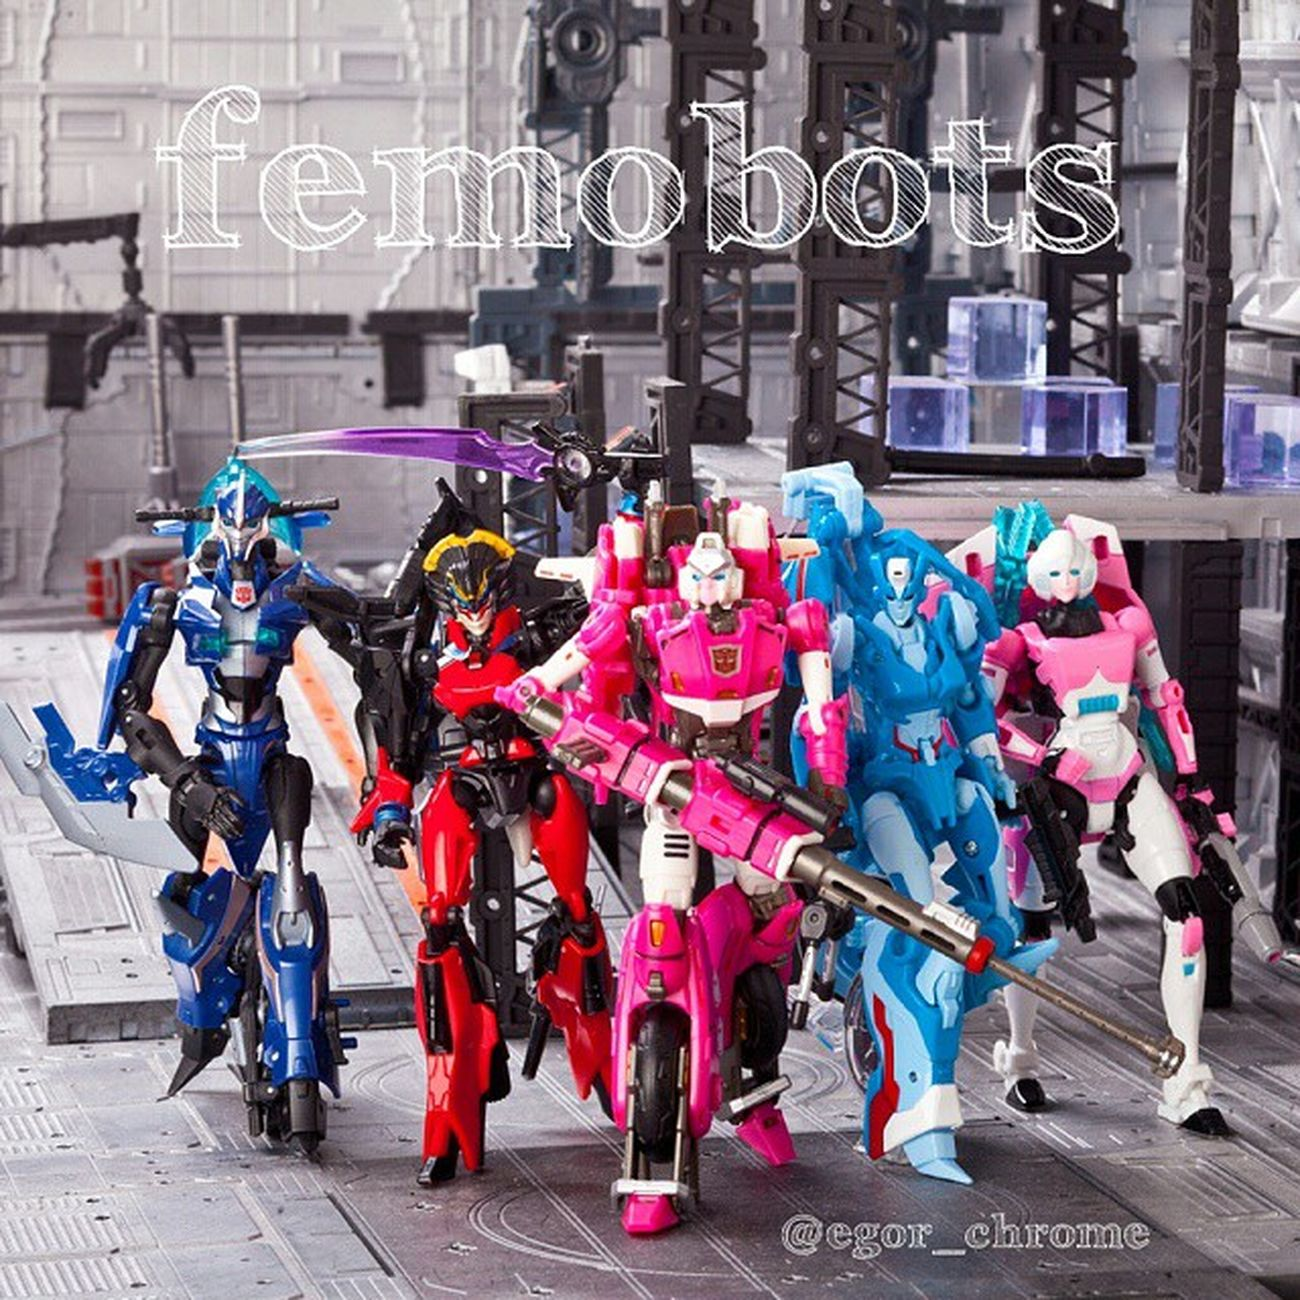 Women's team: Arcee PerfectEffect & Prime & Generation, Chromia, Windblade Women Womensteam Femobot Arcee Chromia Windblade Femobot Perfecteffect Transformersprime